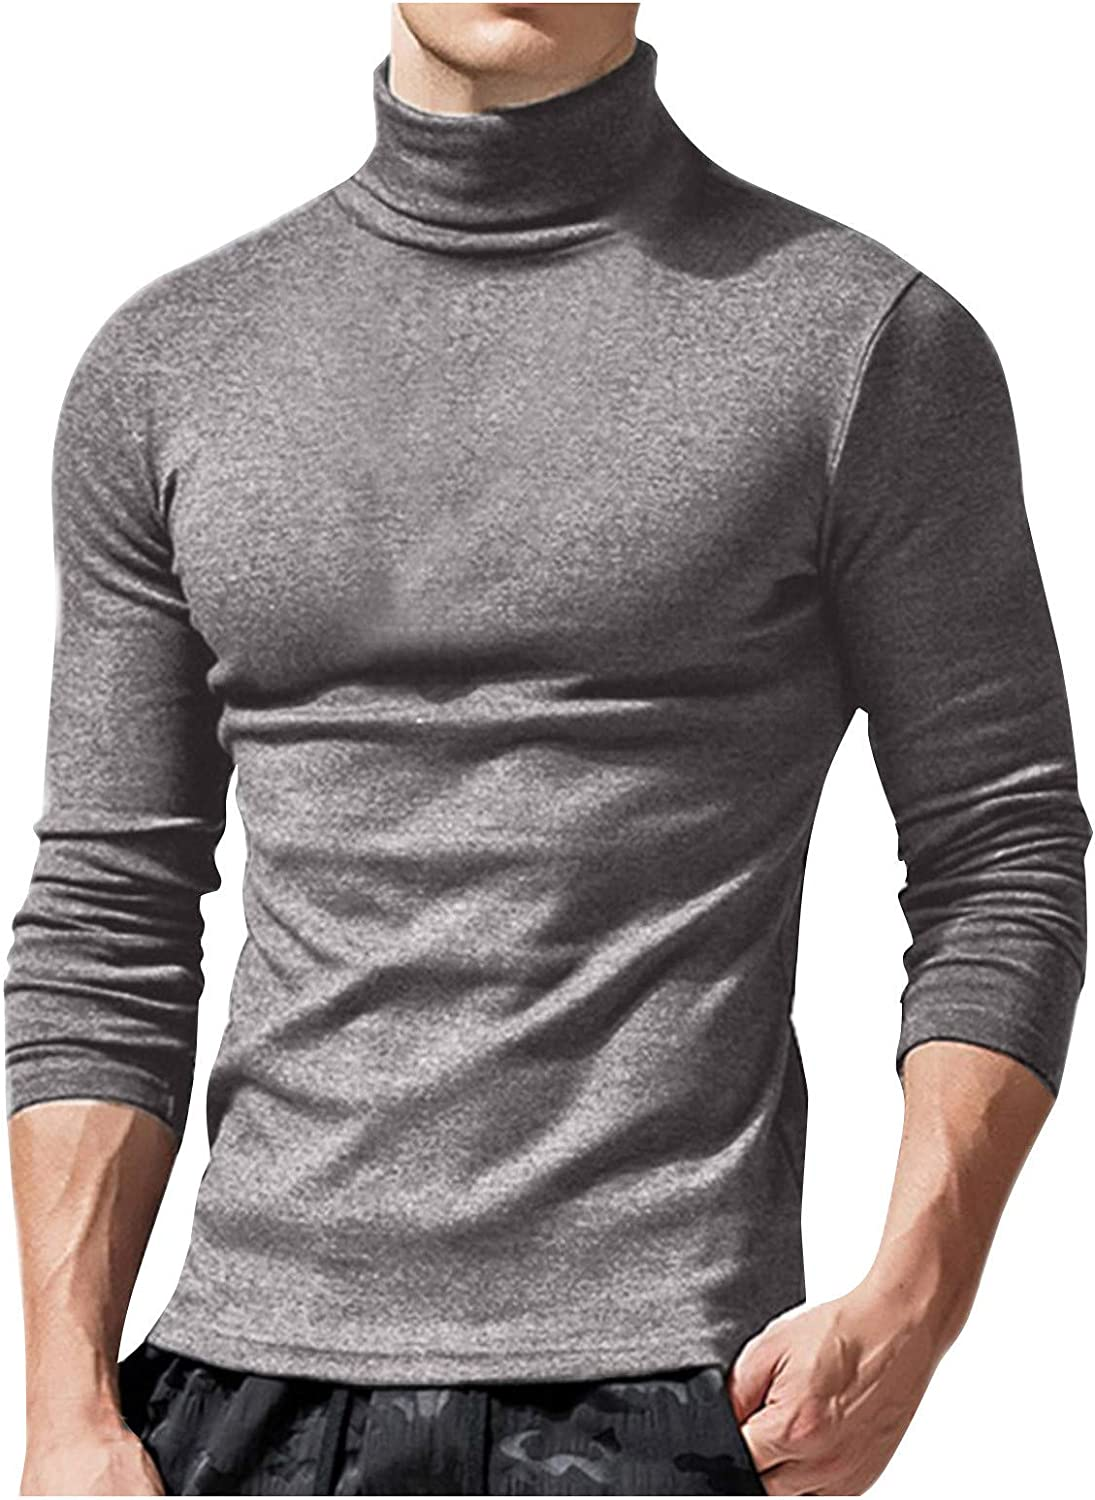 eipogp Men's Solid Turtleneck Pullover Shirts Casual Slim Fit Long Sleeve T-Shirt Basic Thermal Tops